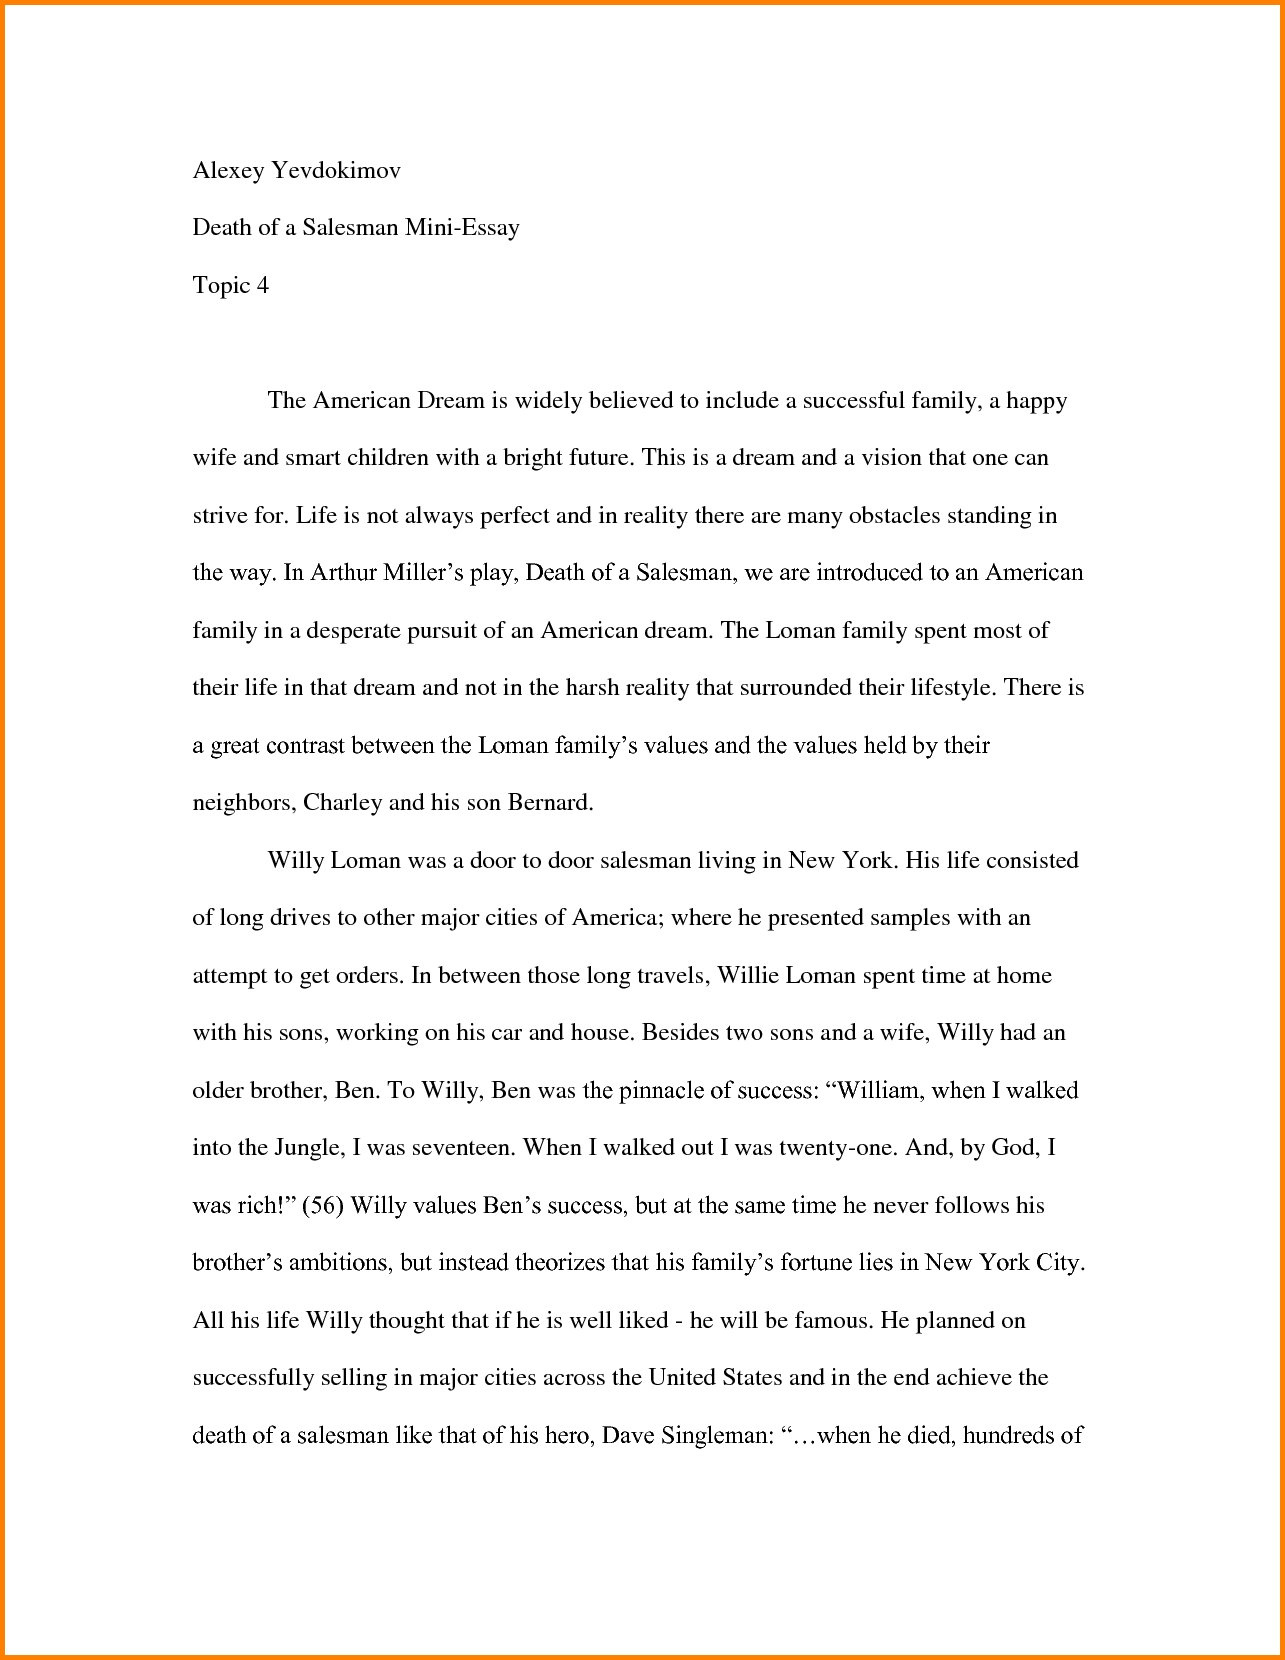 015 Essay Example How To Start An About Myself Yourself Letter Template Photo For College University Autobiography Introductory Scholarship With Quote Examples Unique Off A Job Full